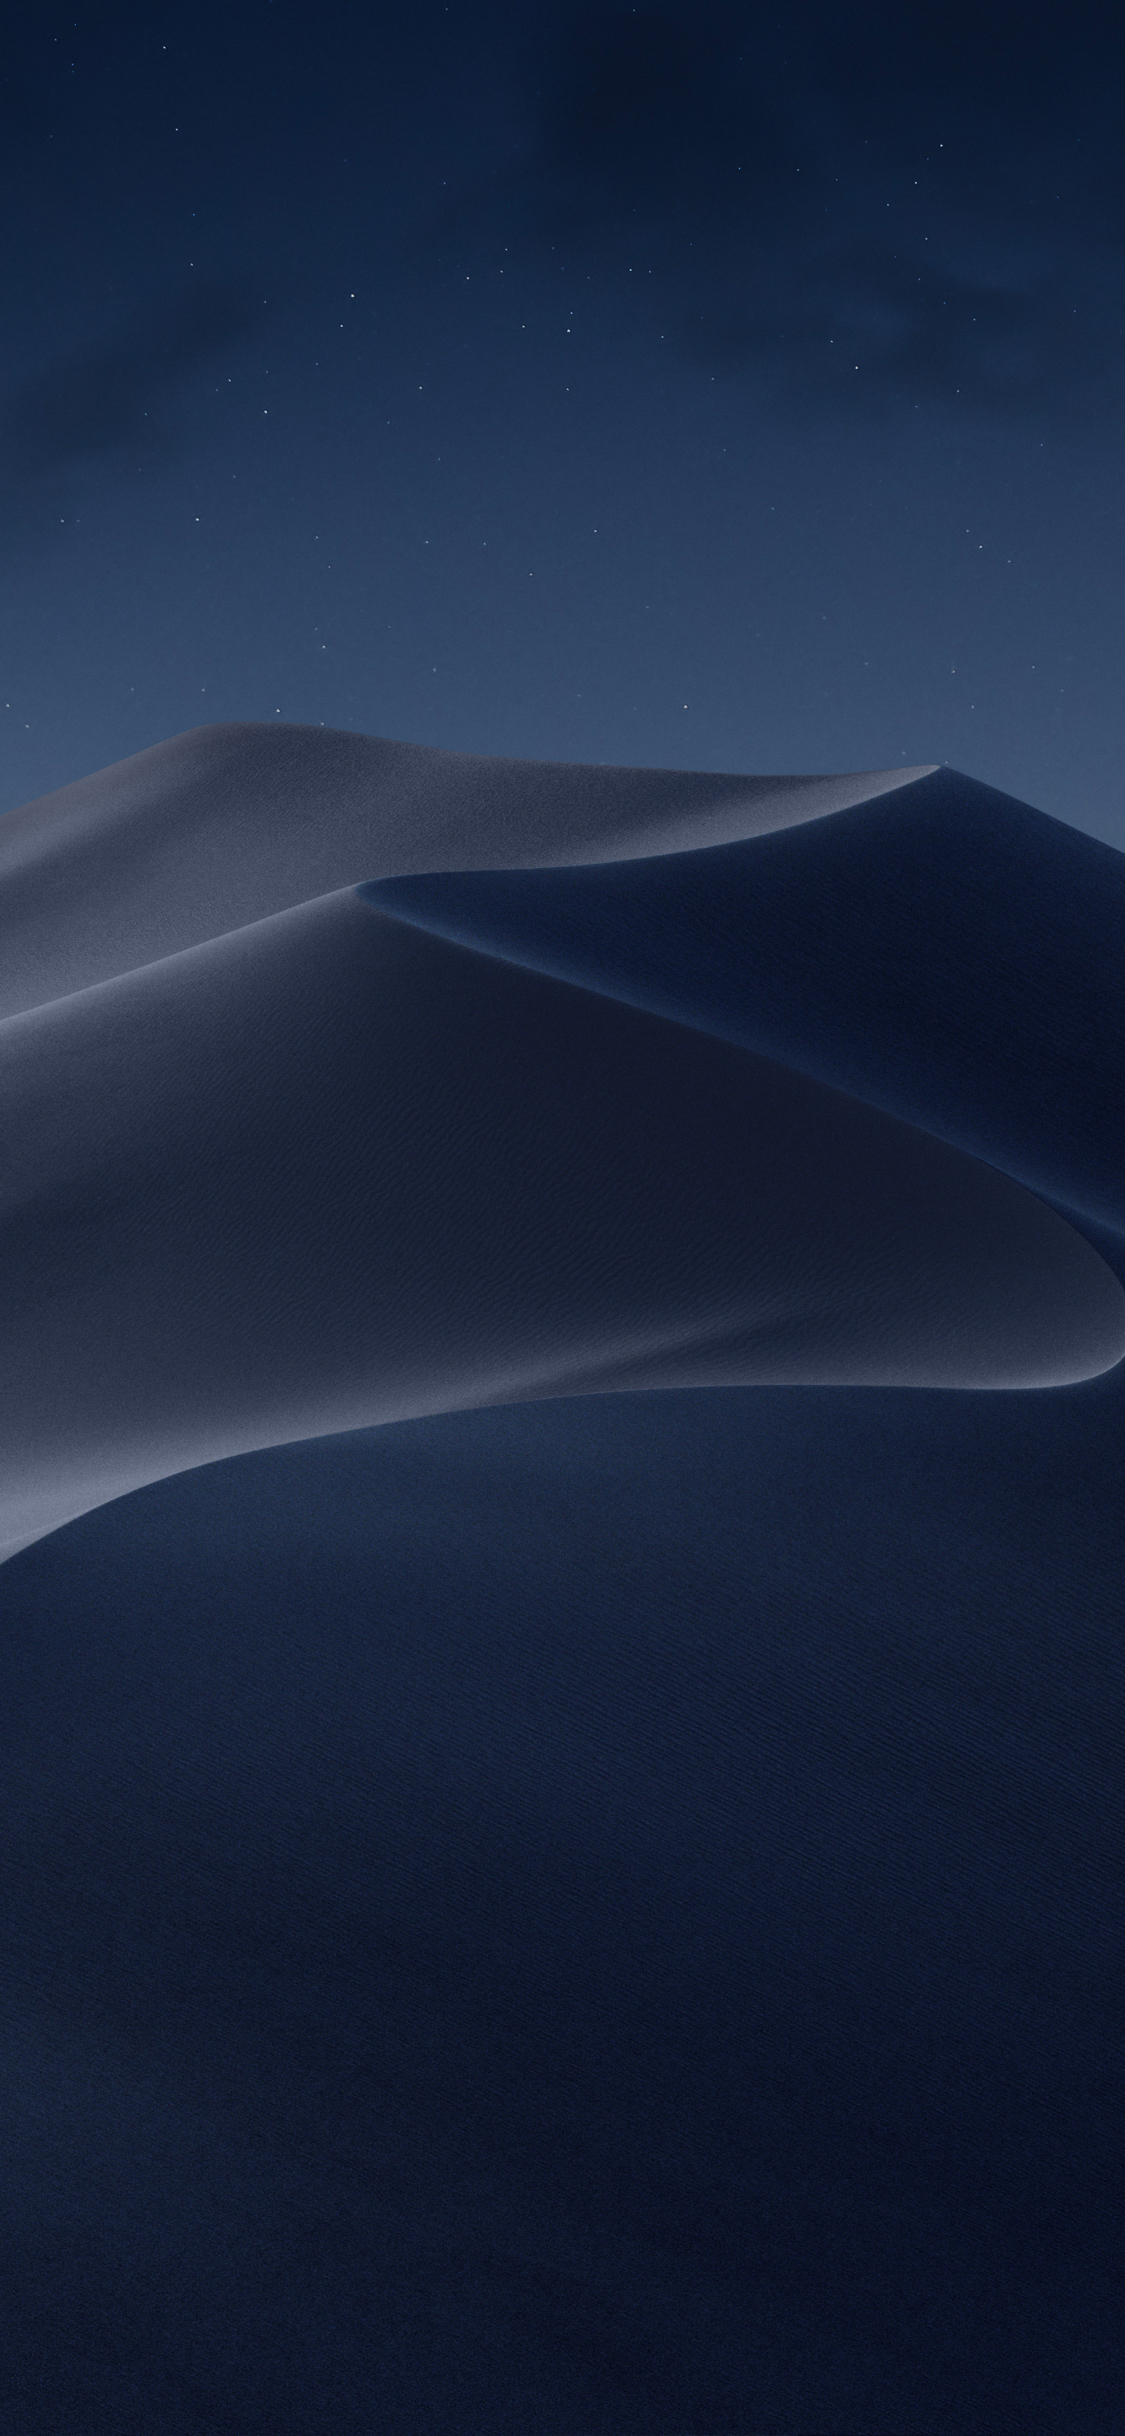 macOS mojave dark iphone wallpaper macOS Mojave